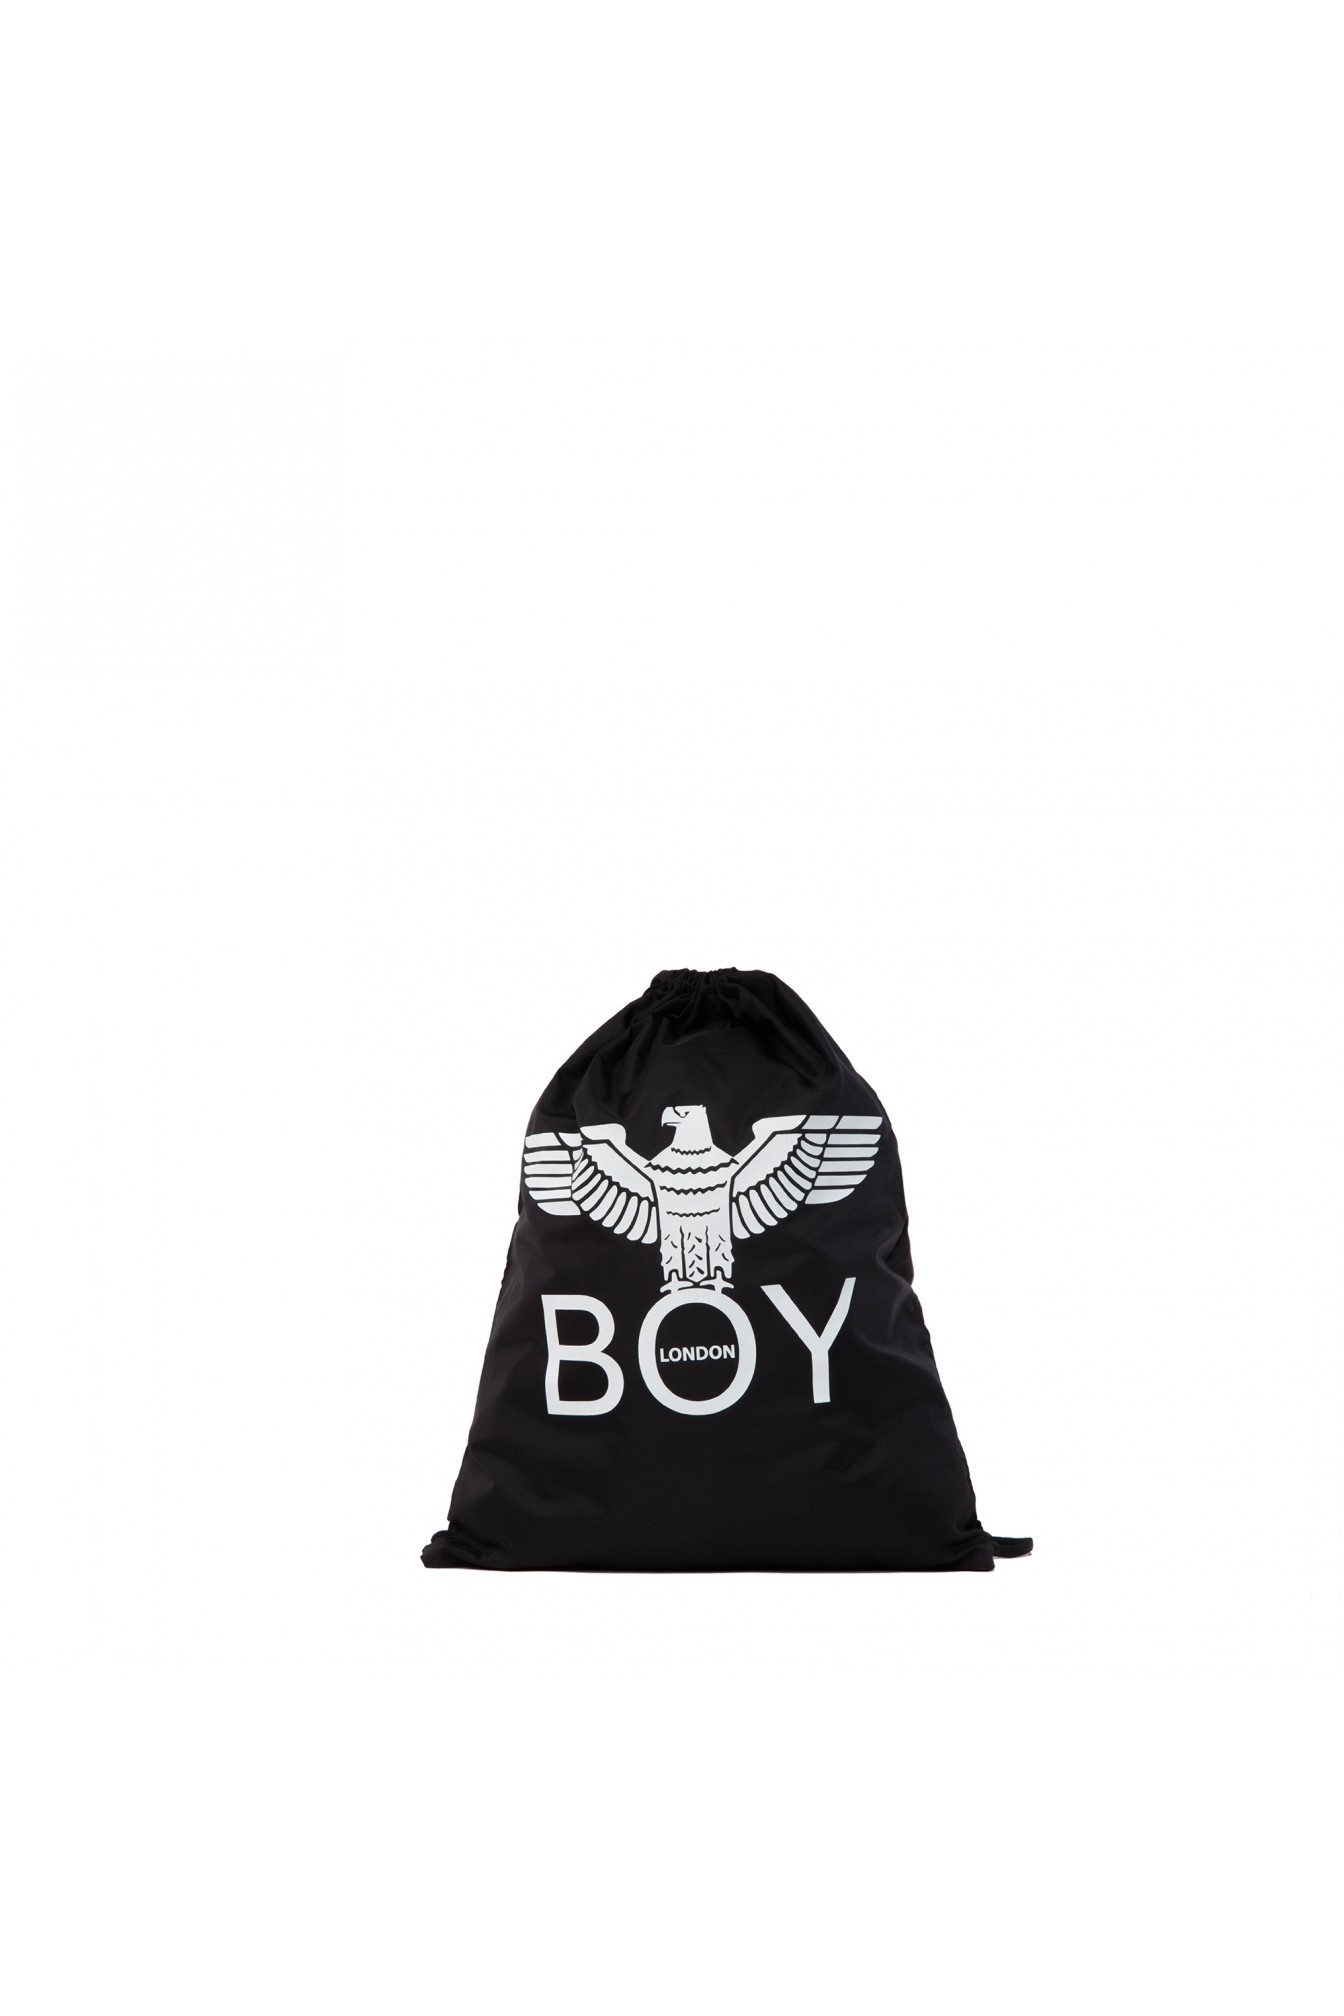 SACCA - BLA403 - BOY LONDON